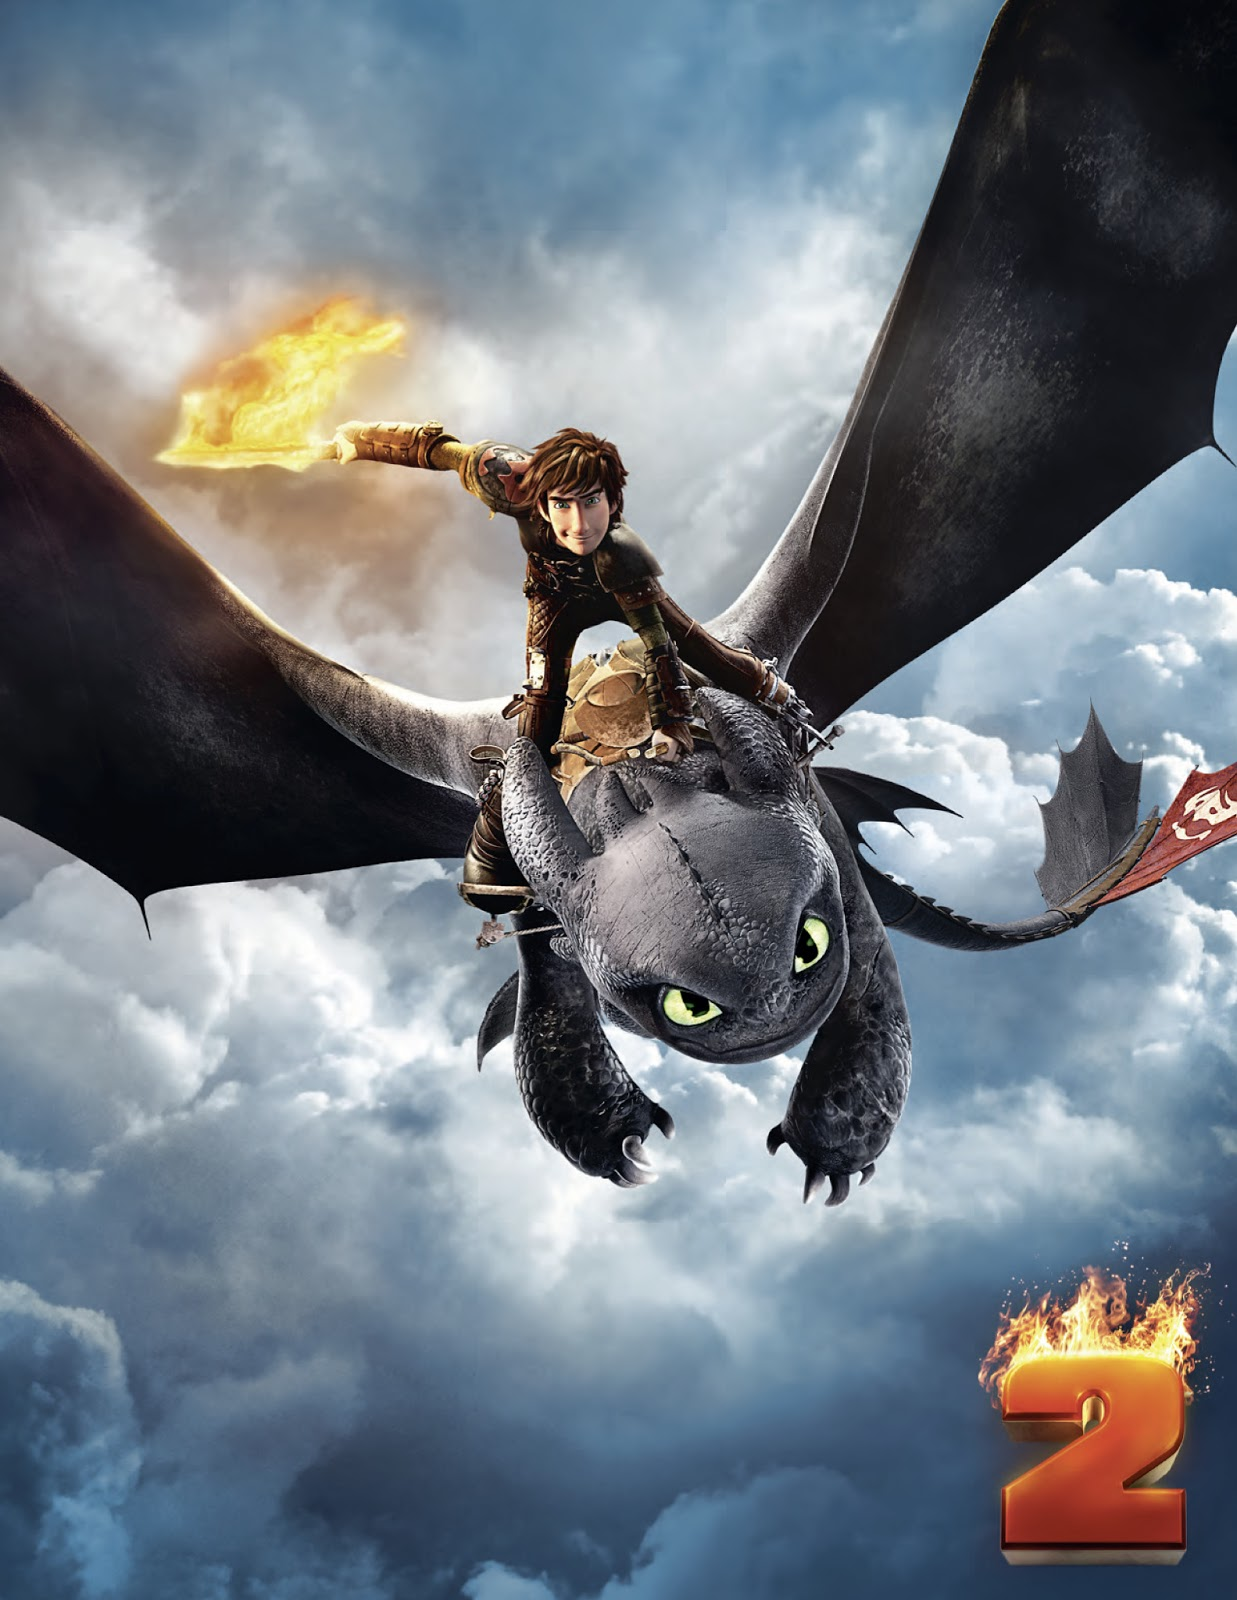 How To Train Your Dragon 2 Teaser Poster : Teaser Trailer - photo#10